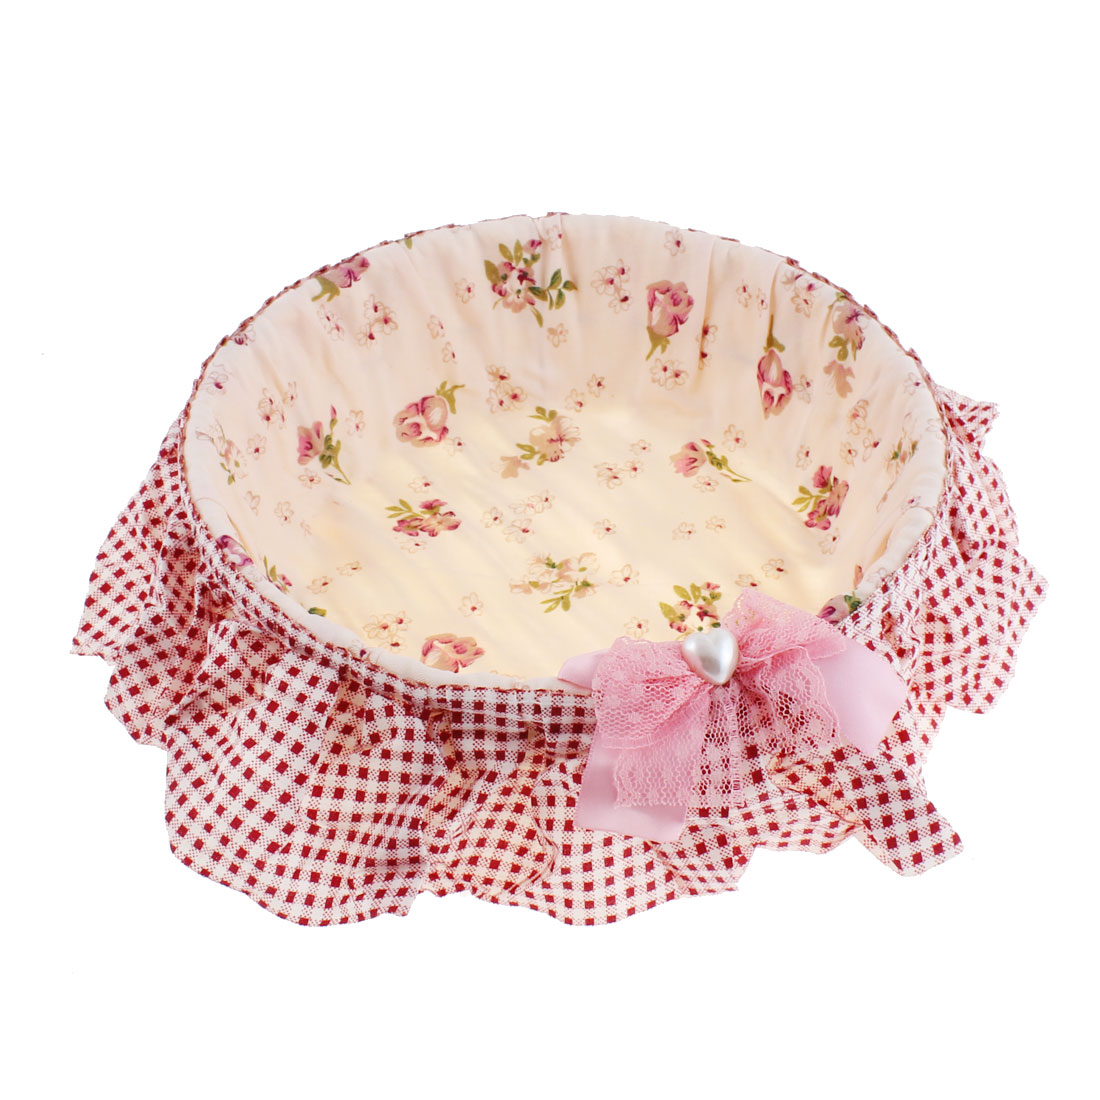 Flower Pattern Jewelry Sundries Handcrafted Storage Basket Holder 21cm Dia Pink